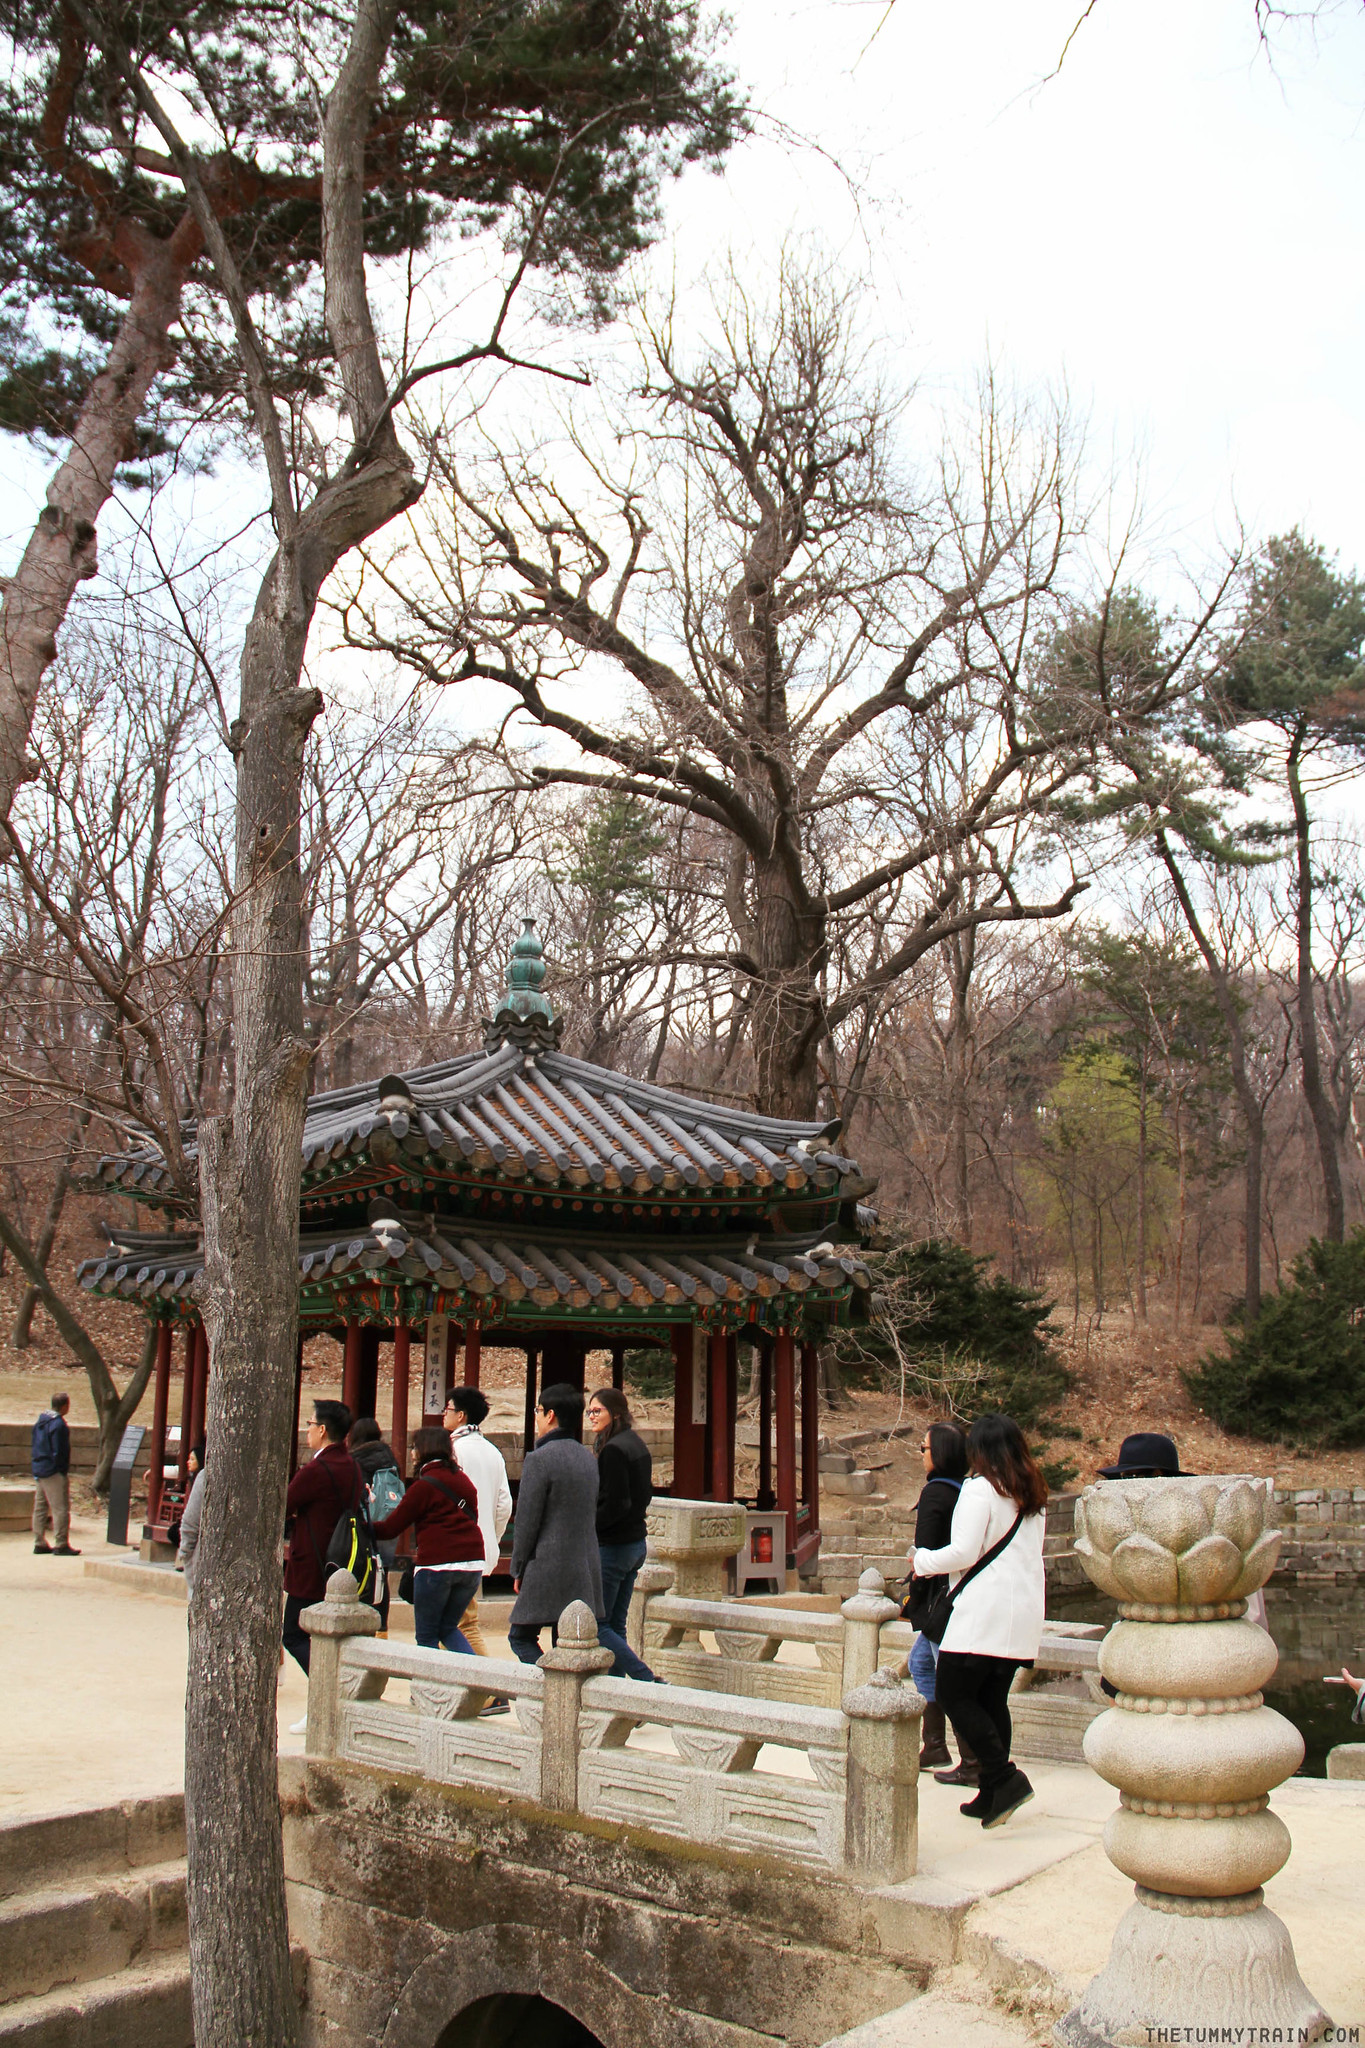 33401719101 e1aee79e1f k - Seoul-ful Spring 2016: Greeting the first blooms at Changdeokgung Palace